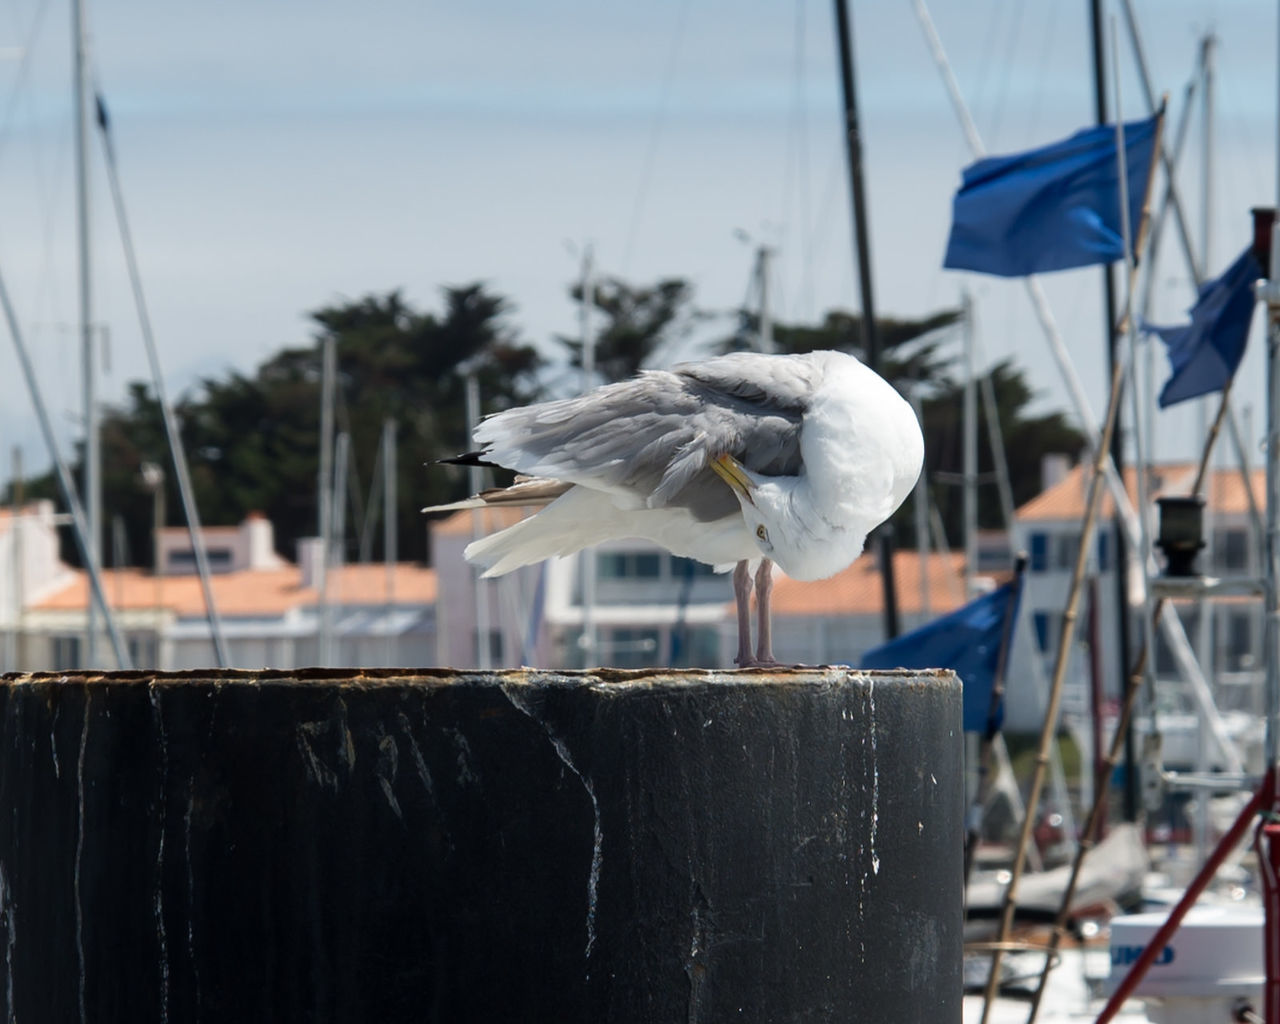 focus on foreground, no people, day, one animal, outdoors, water, animal wildlife, harbor, bird, animals in the wild, animal themes, close-up, nautical vessel, nature